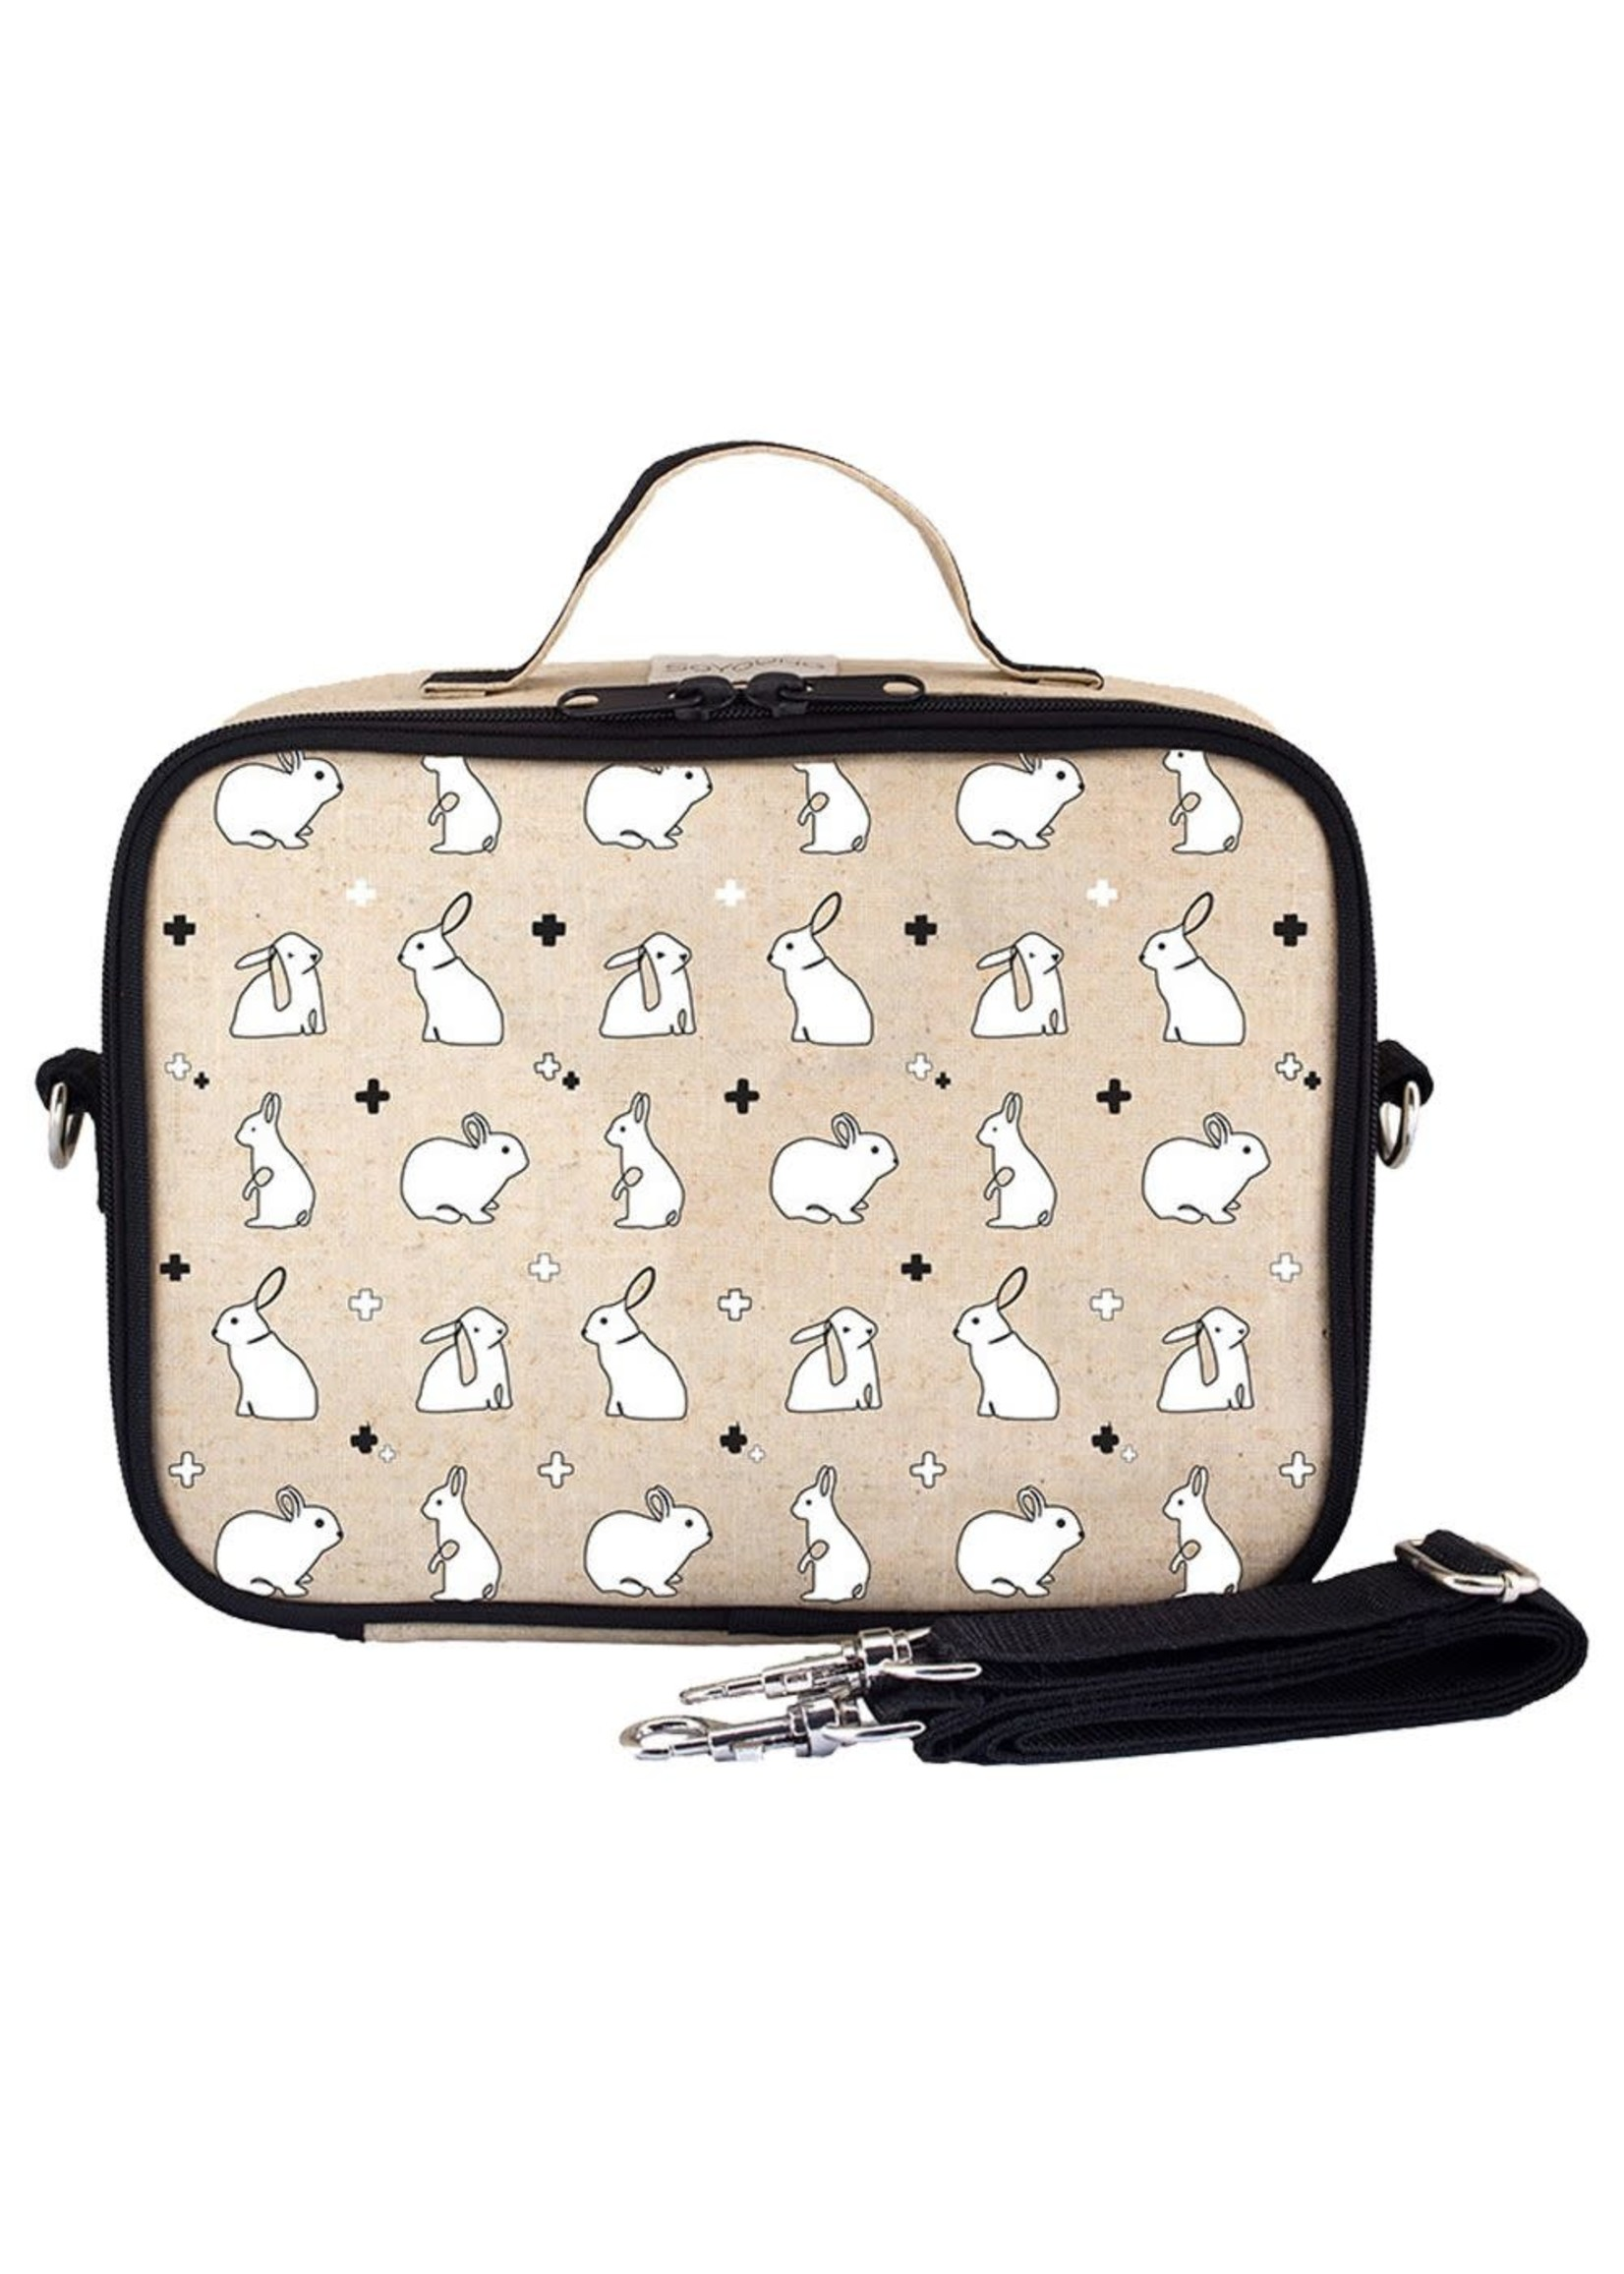 SoYoung SoYoung Lunchbag (Bunny Tile)